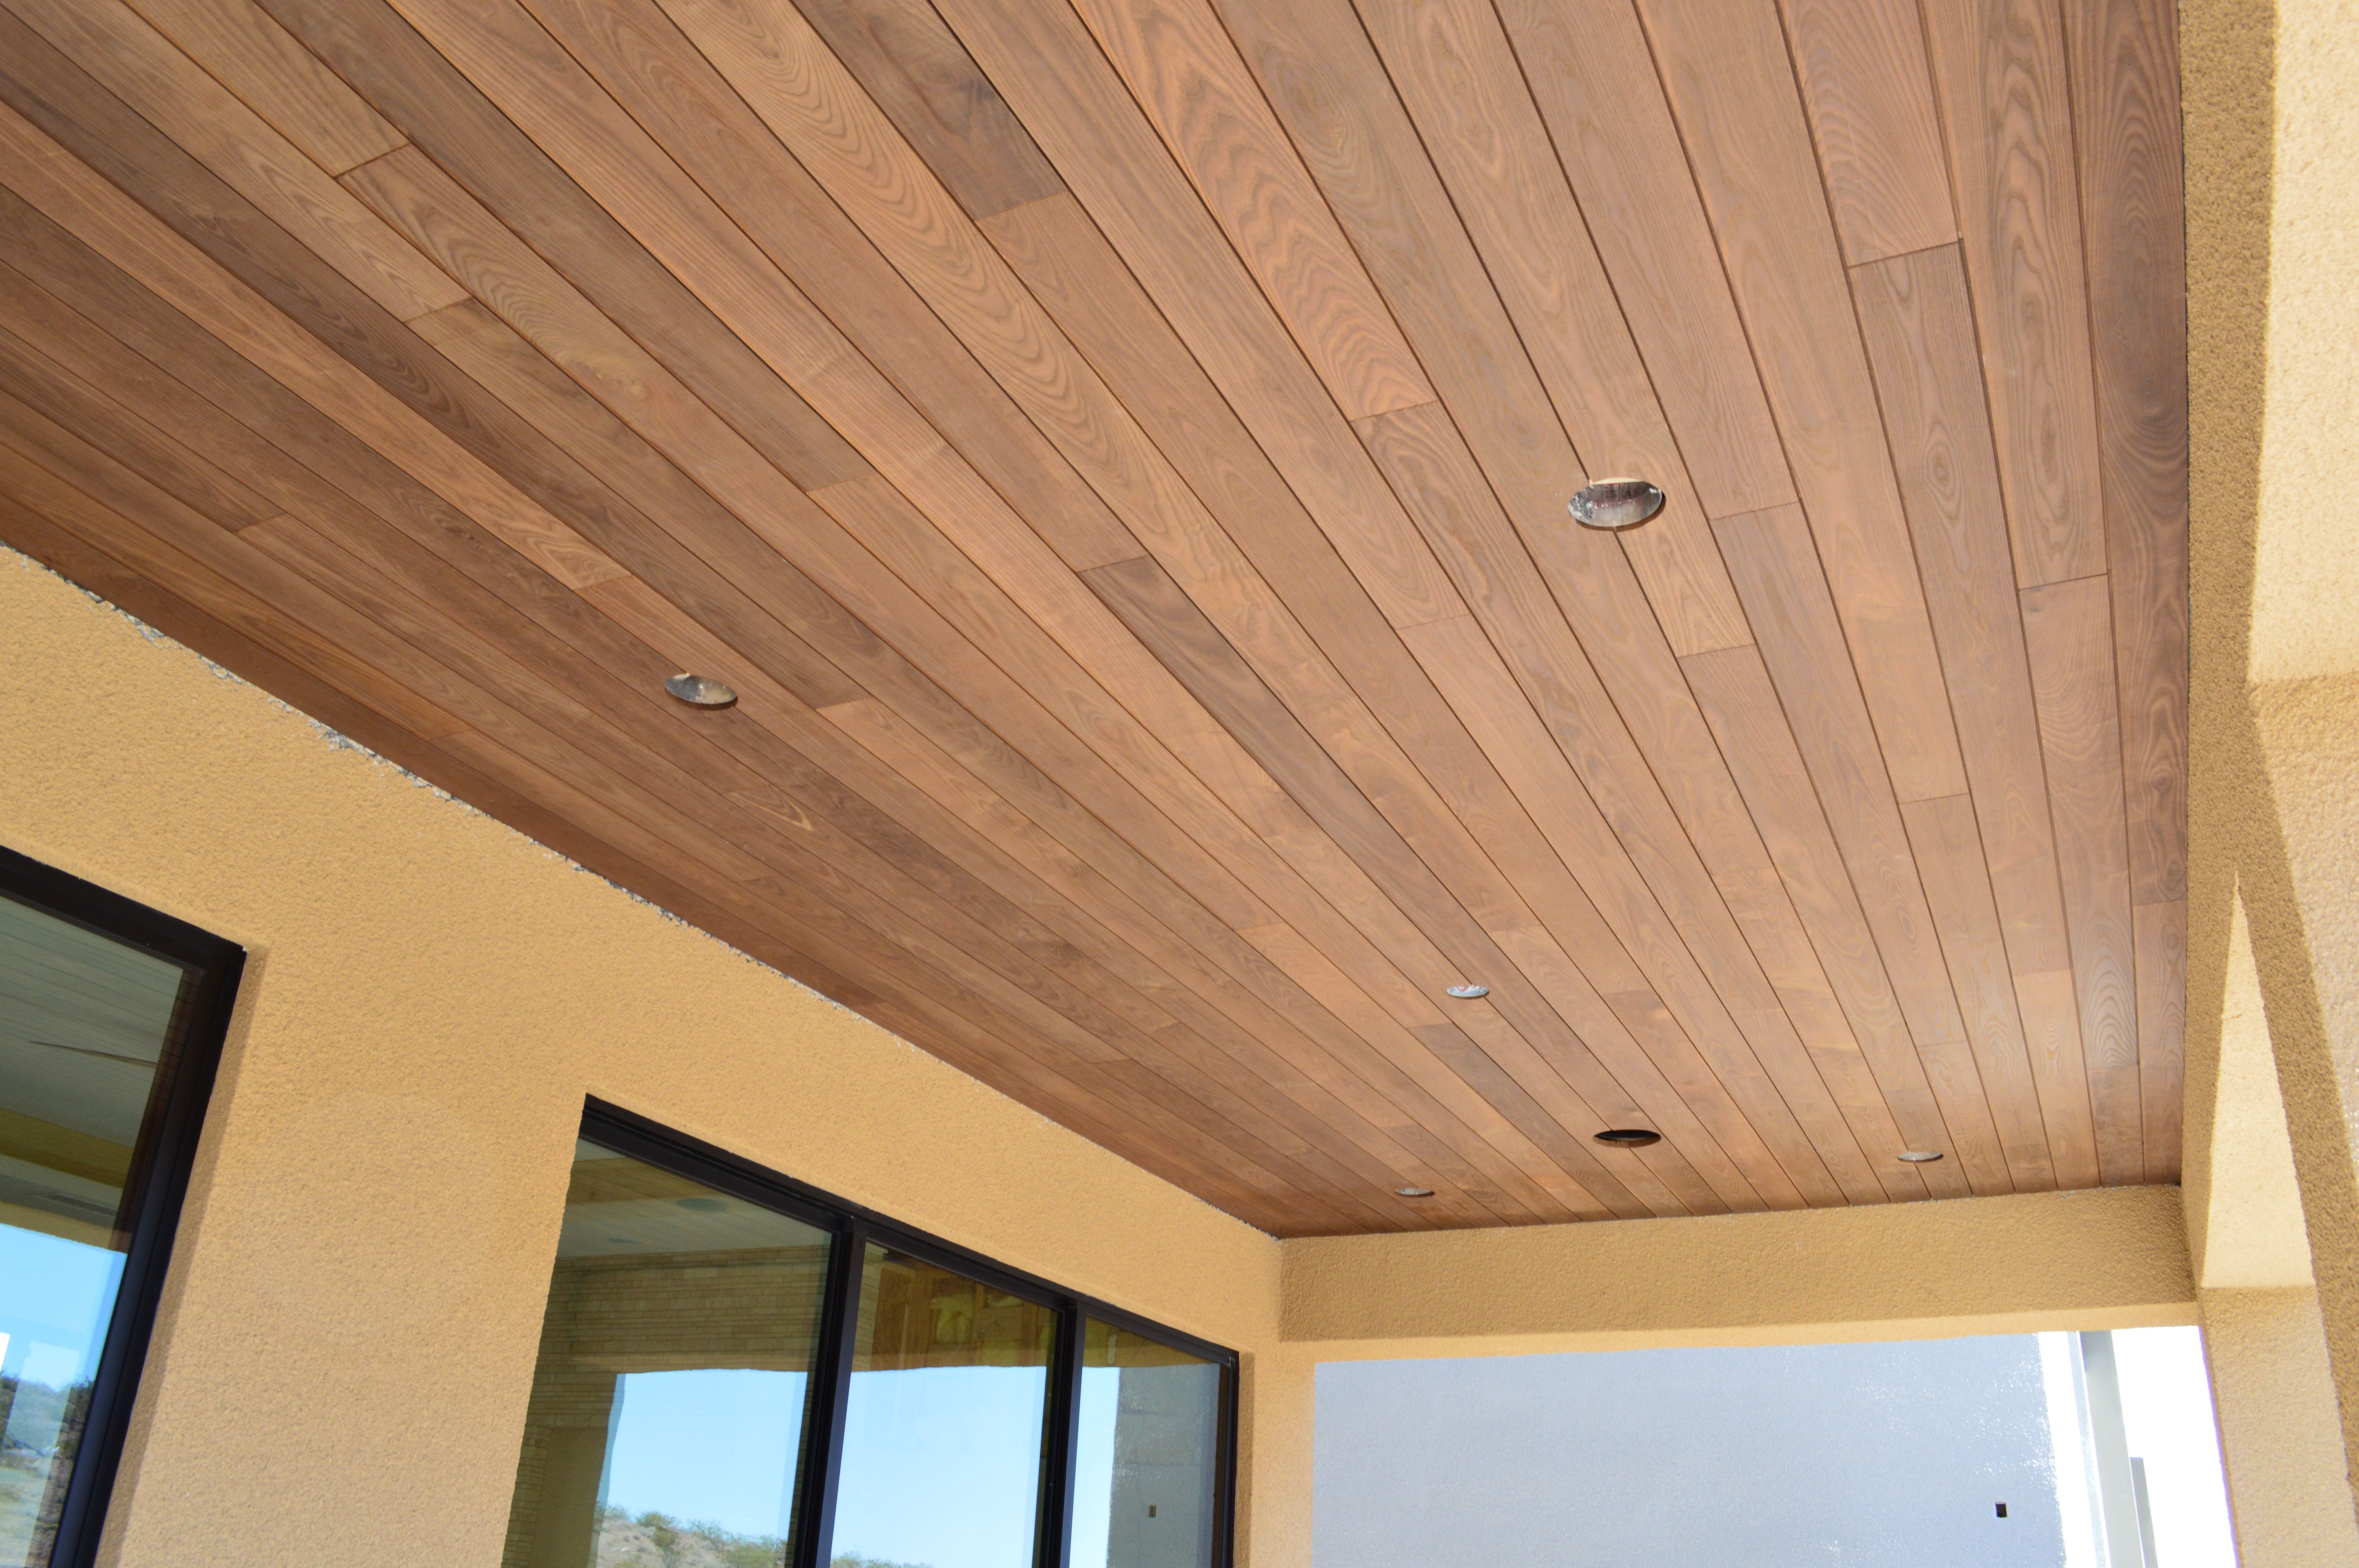 Thermory Featured On An Outside Porch Ceiling Wood Cladding